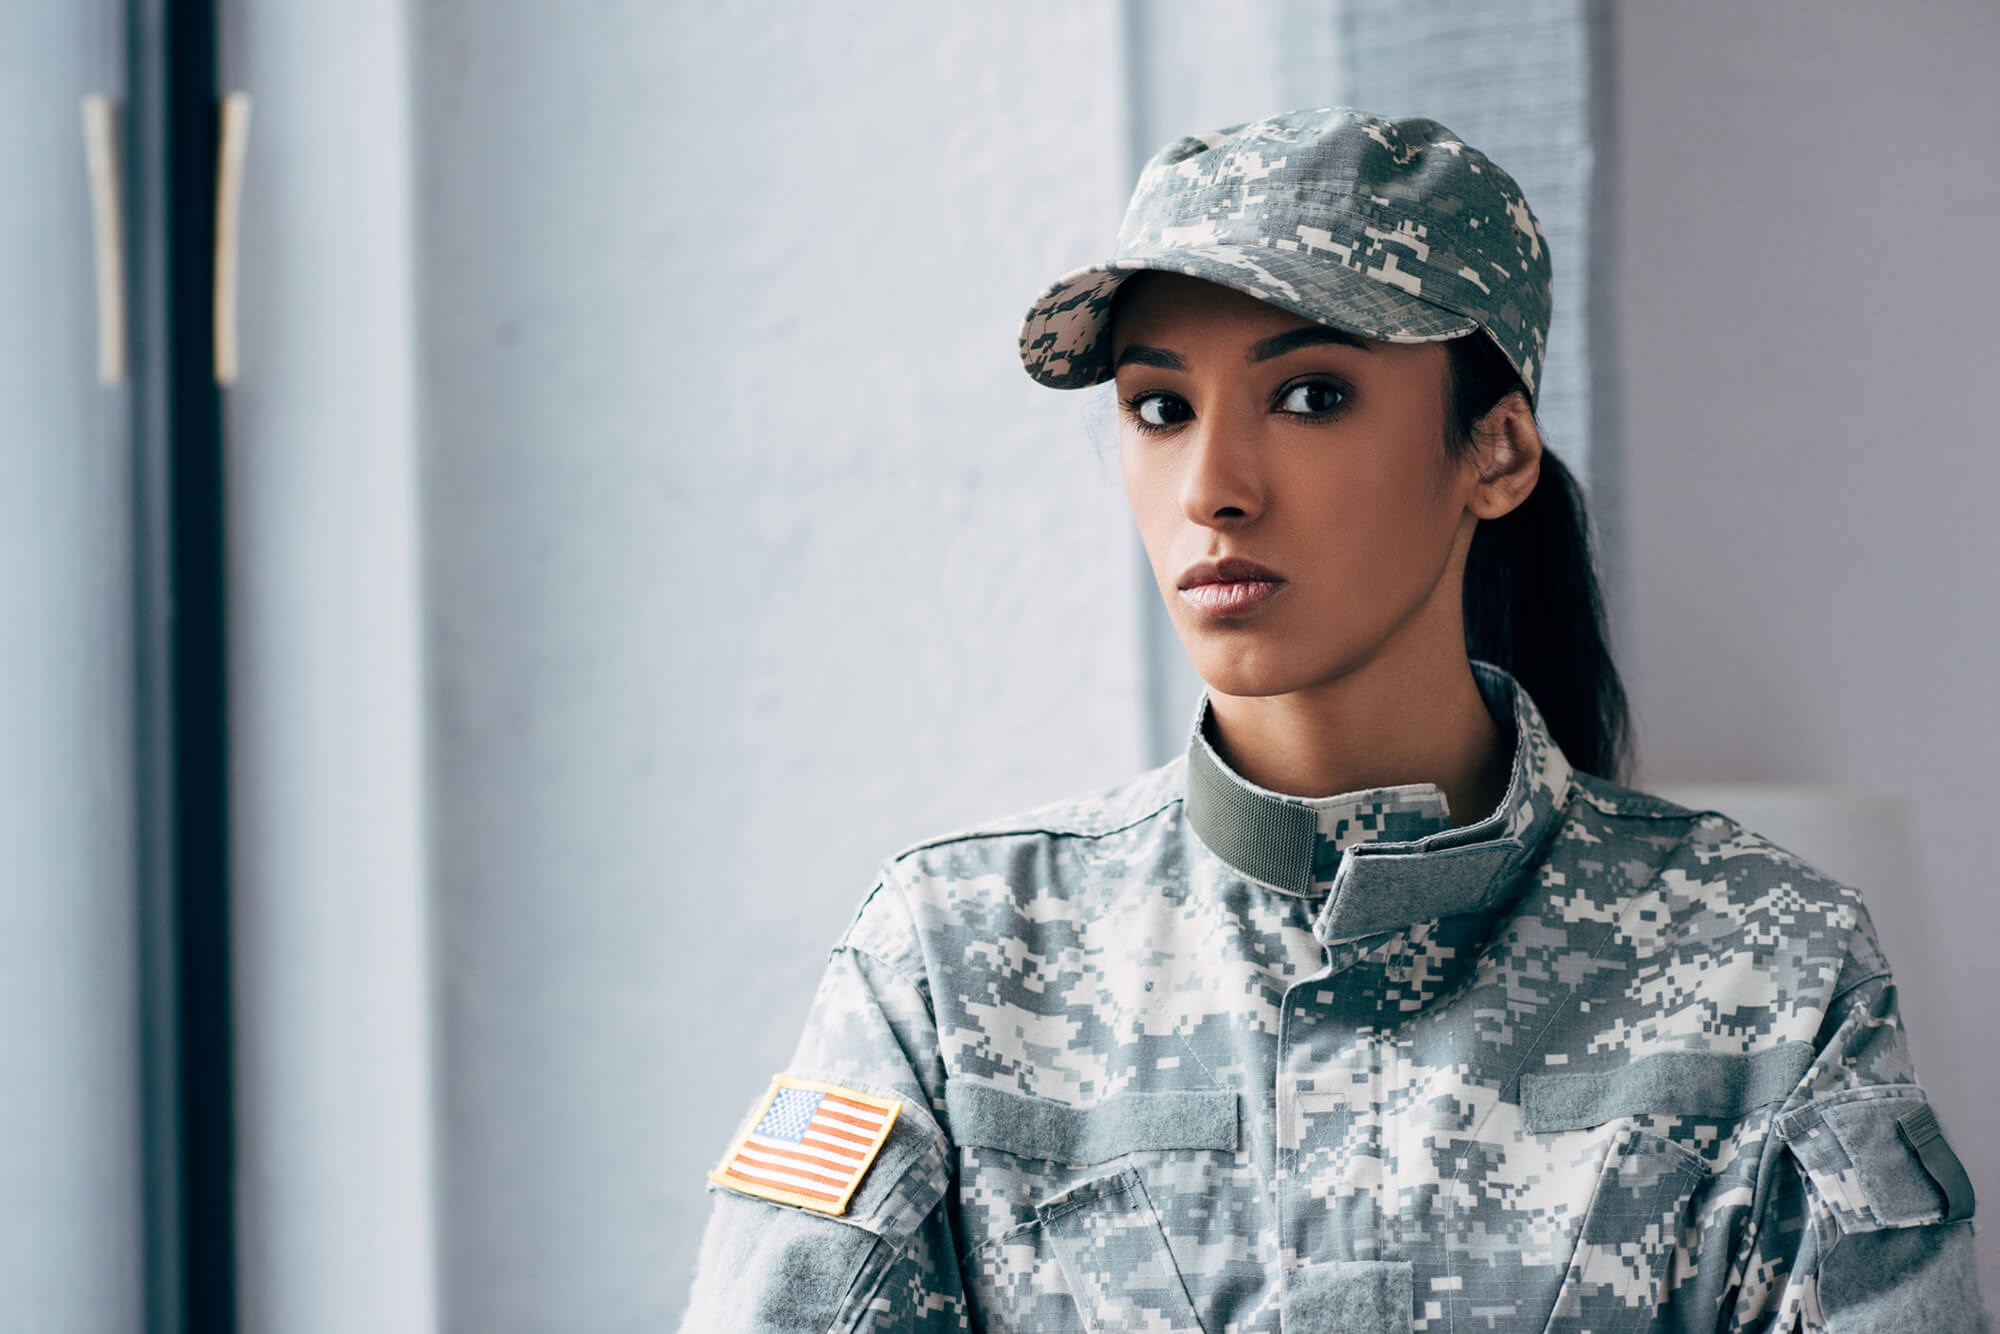 Risk of Breast Cancer Higher for African American Female Veterans